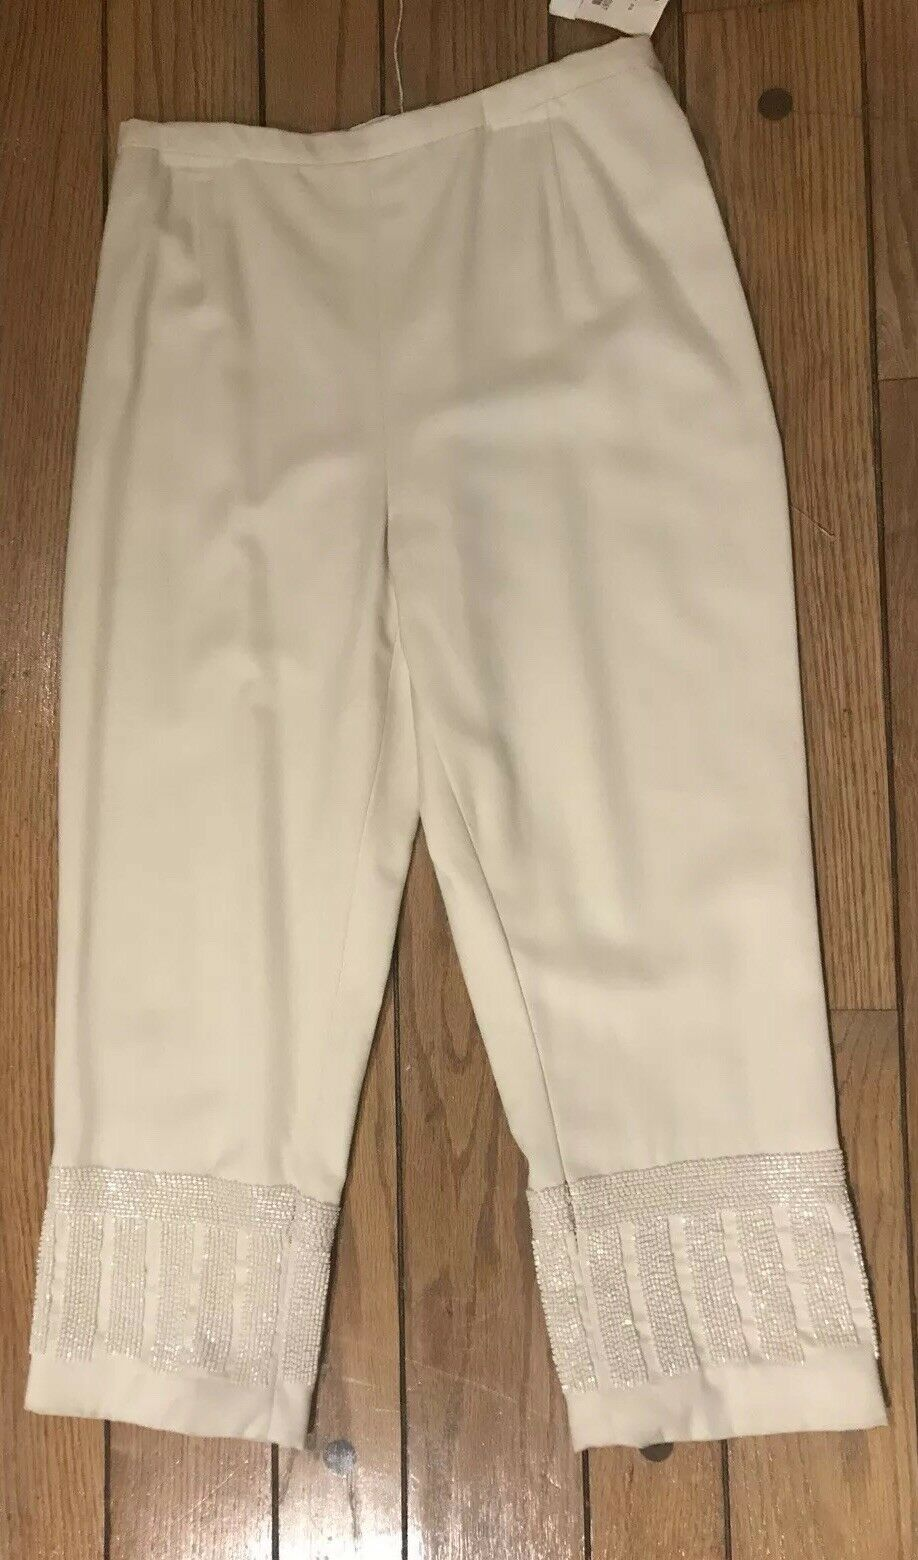 1,780 AREND Luxury Women Crop Capri Sequin Pants 100% Wool Cream Off White NWT